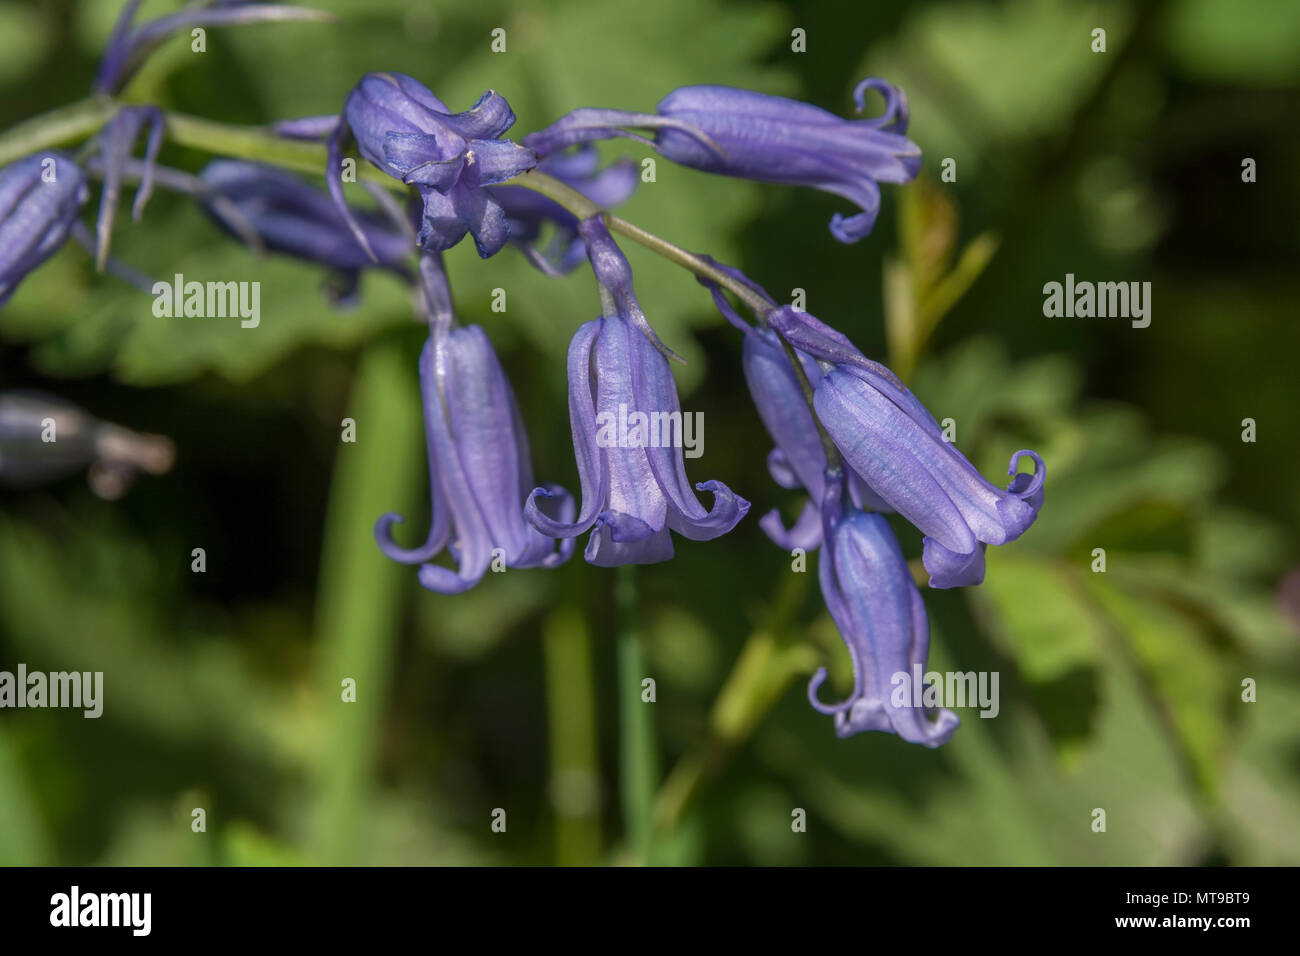 Close-up of the flowers of Bluebell (Endymion non-scriptus) in sunshine. Sometimes referred to as the English Bluebell cf. Spanish Bluebell. - Stock Image